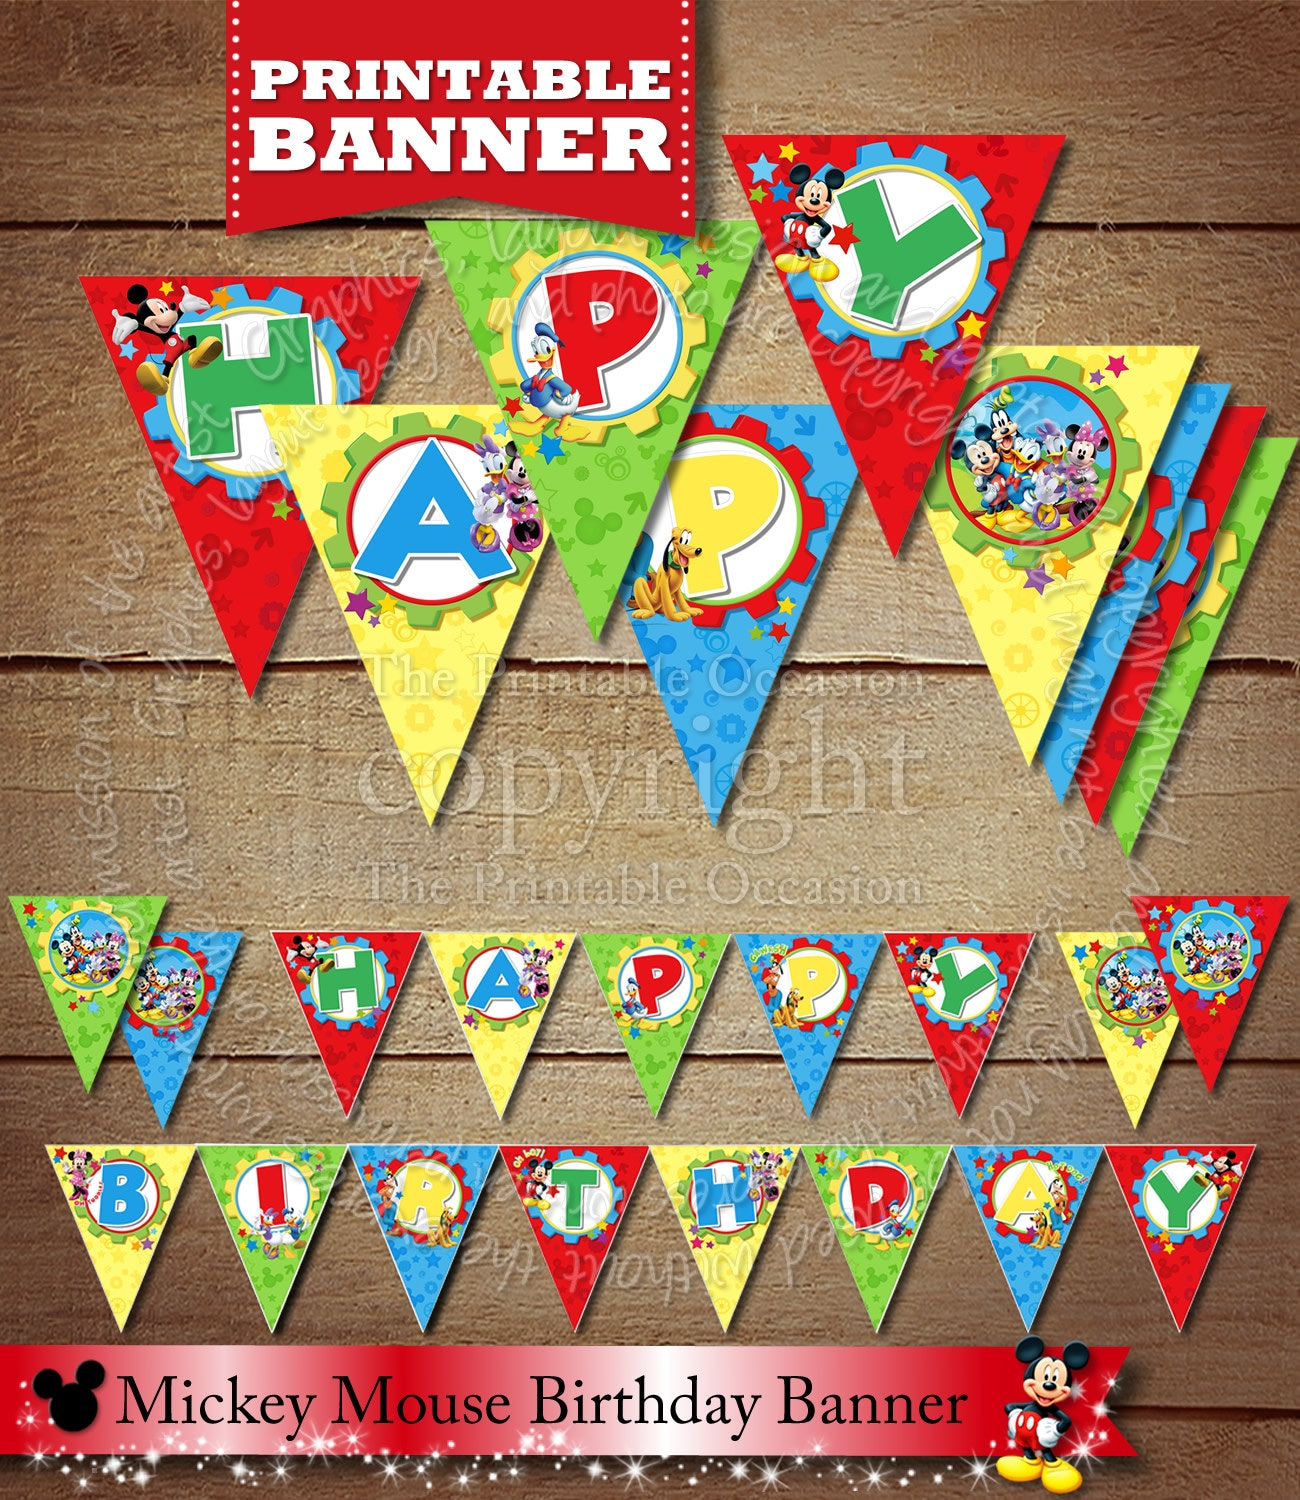 Mesmerizing image pertaining to printable happy birthday banners